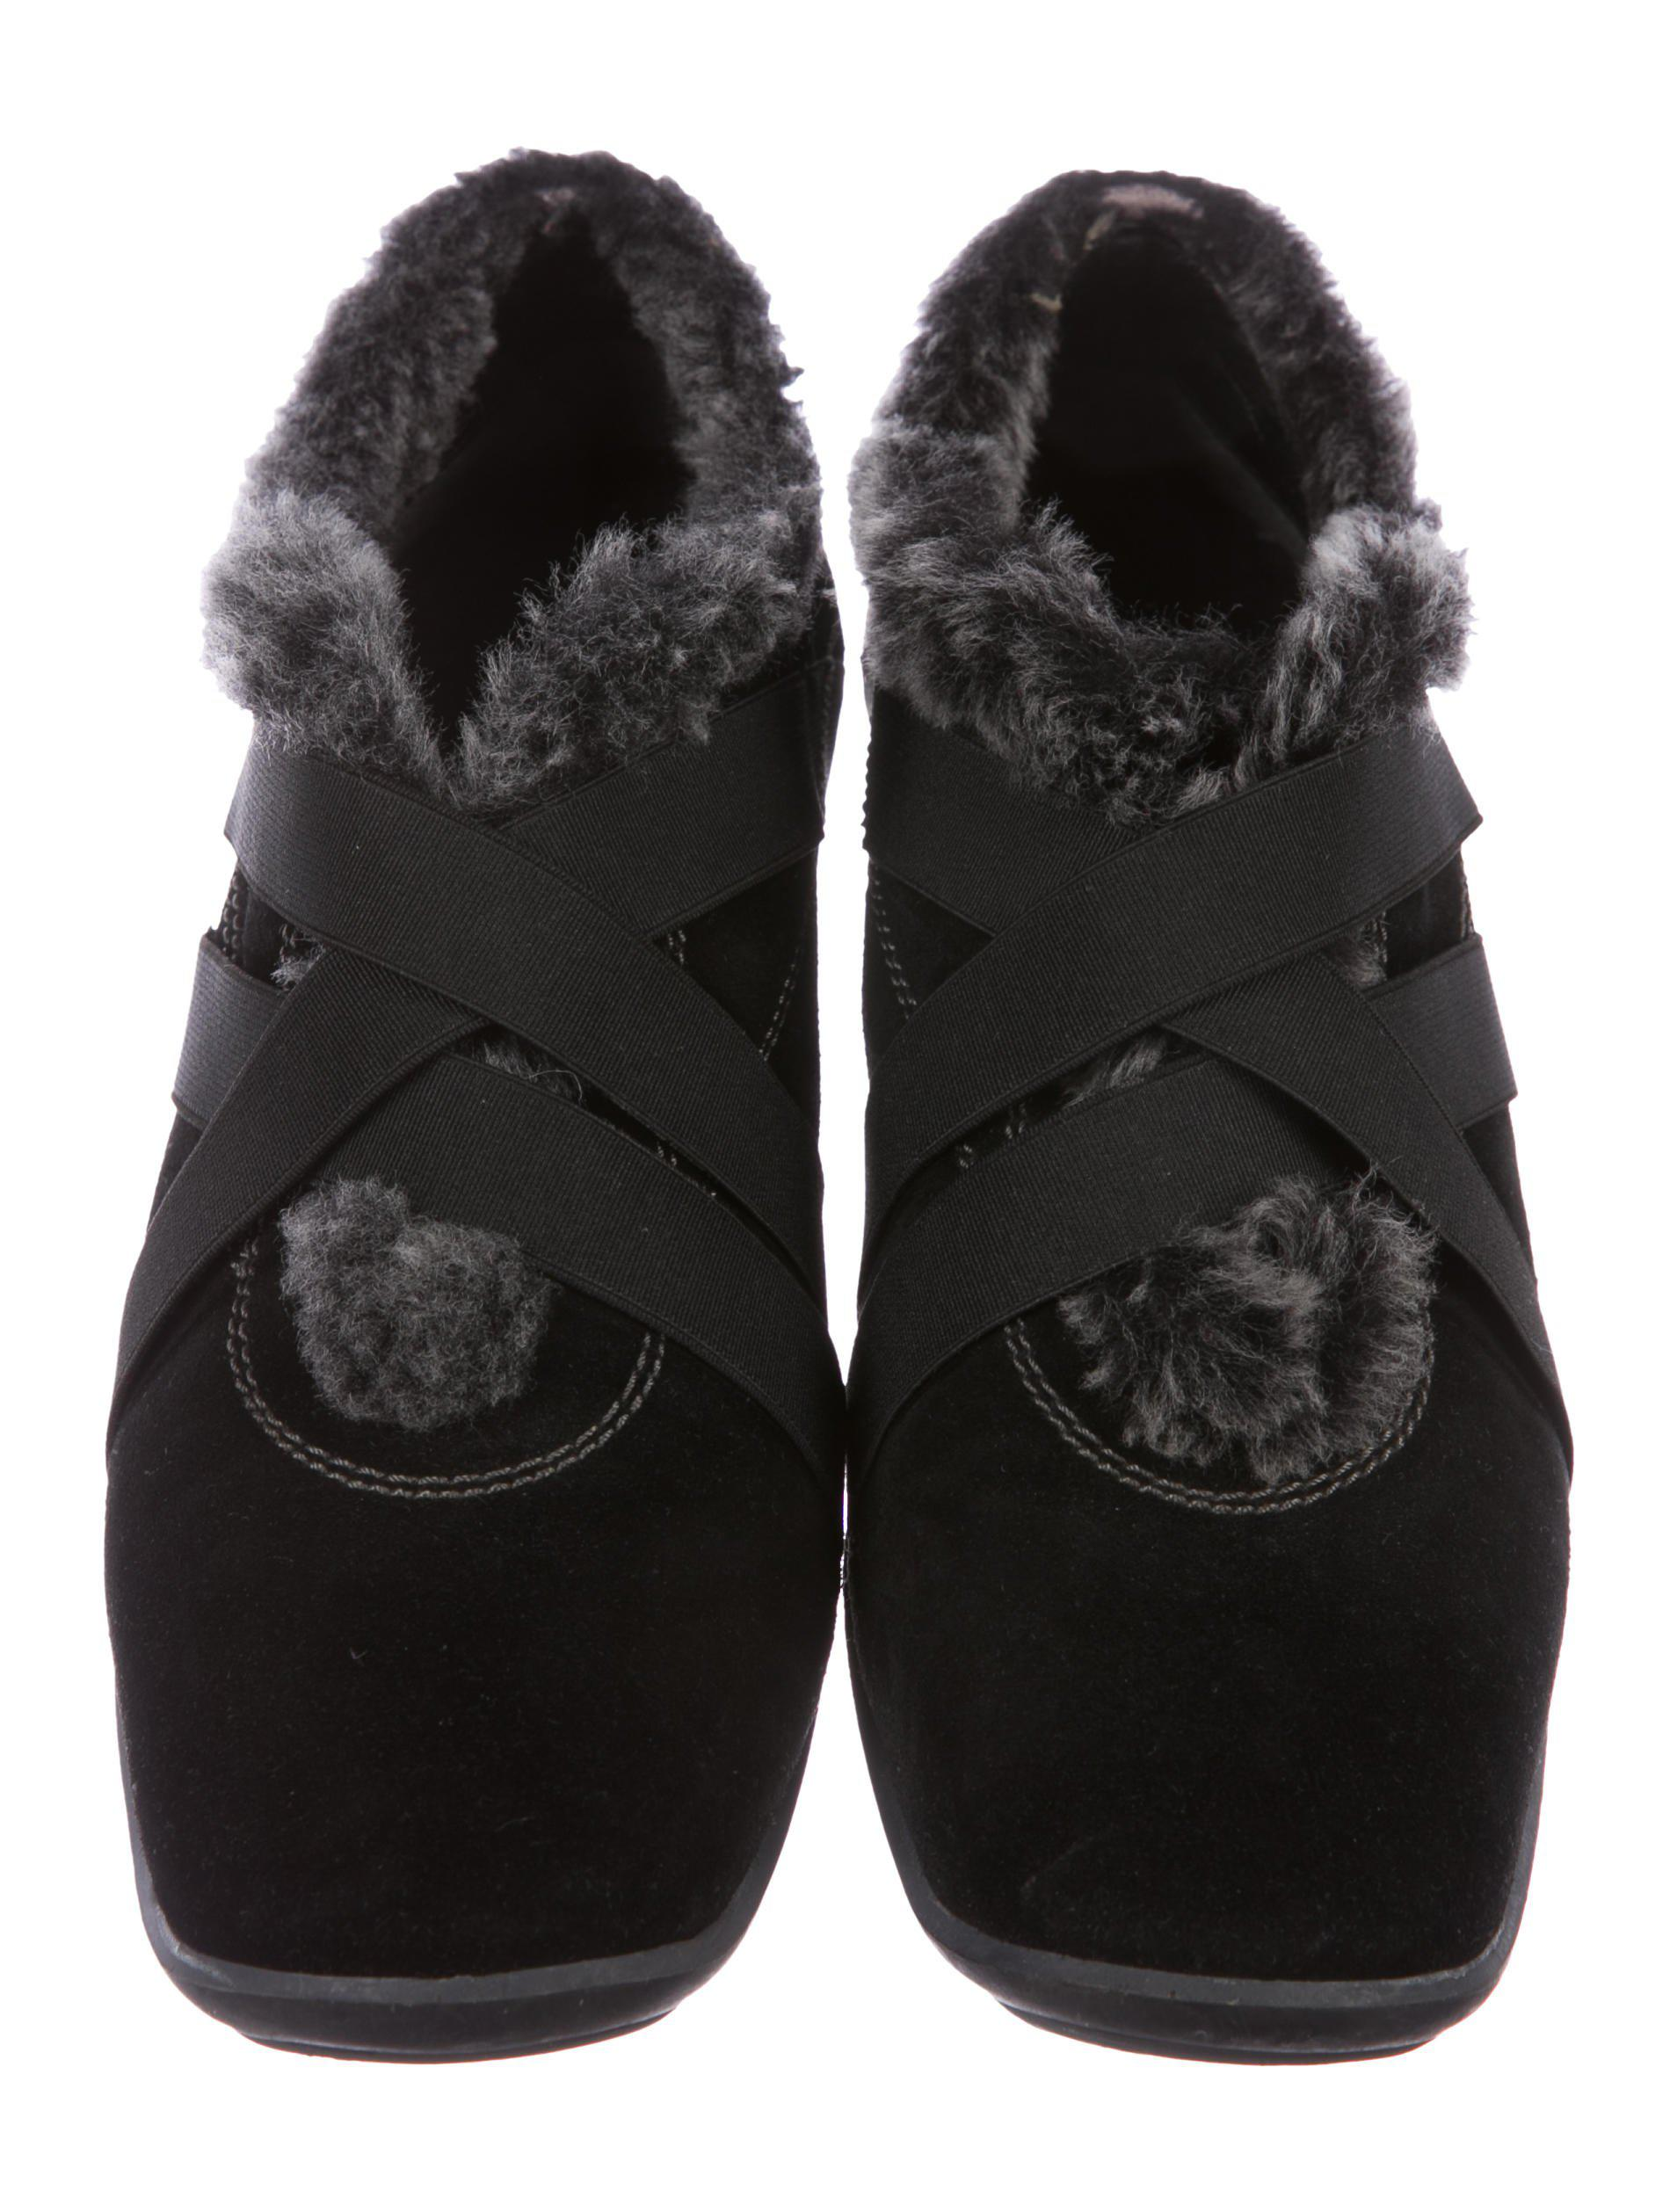 cheap pictures Stuart Weitzman Happyfeet Shearling-Trimmed Sneakers outlet purchase outlet sale online cheap sale the cheapest excellent QGS6FMk